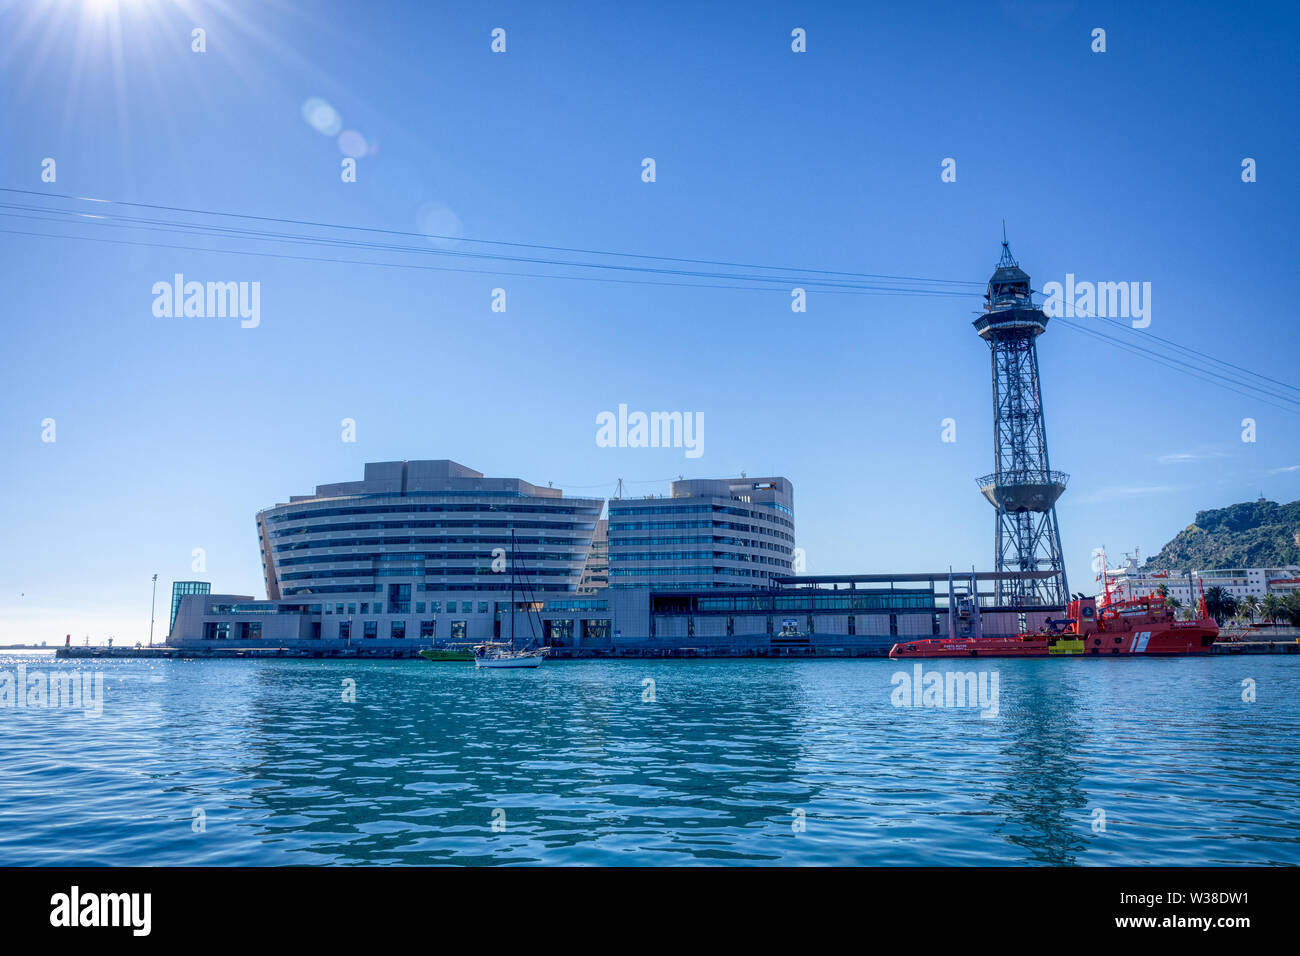 World Trade Center Barcelona is a business park located in Barcelona, Spain - Stock Image